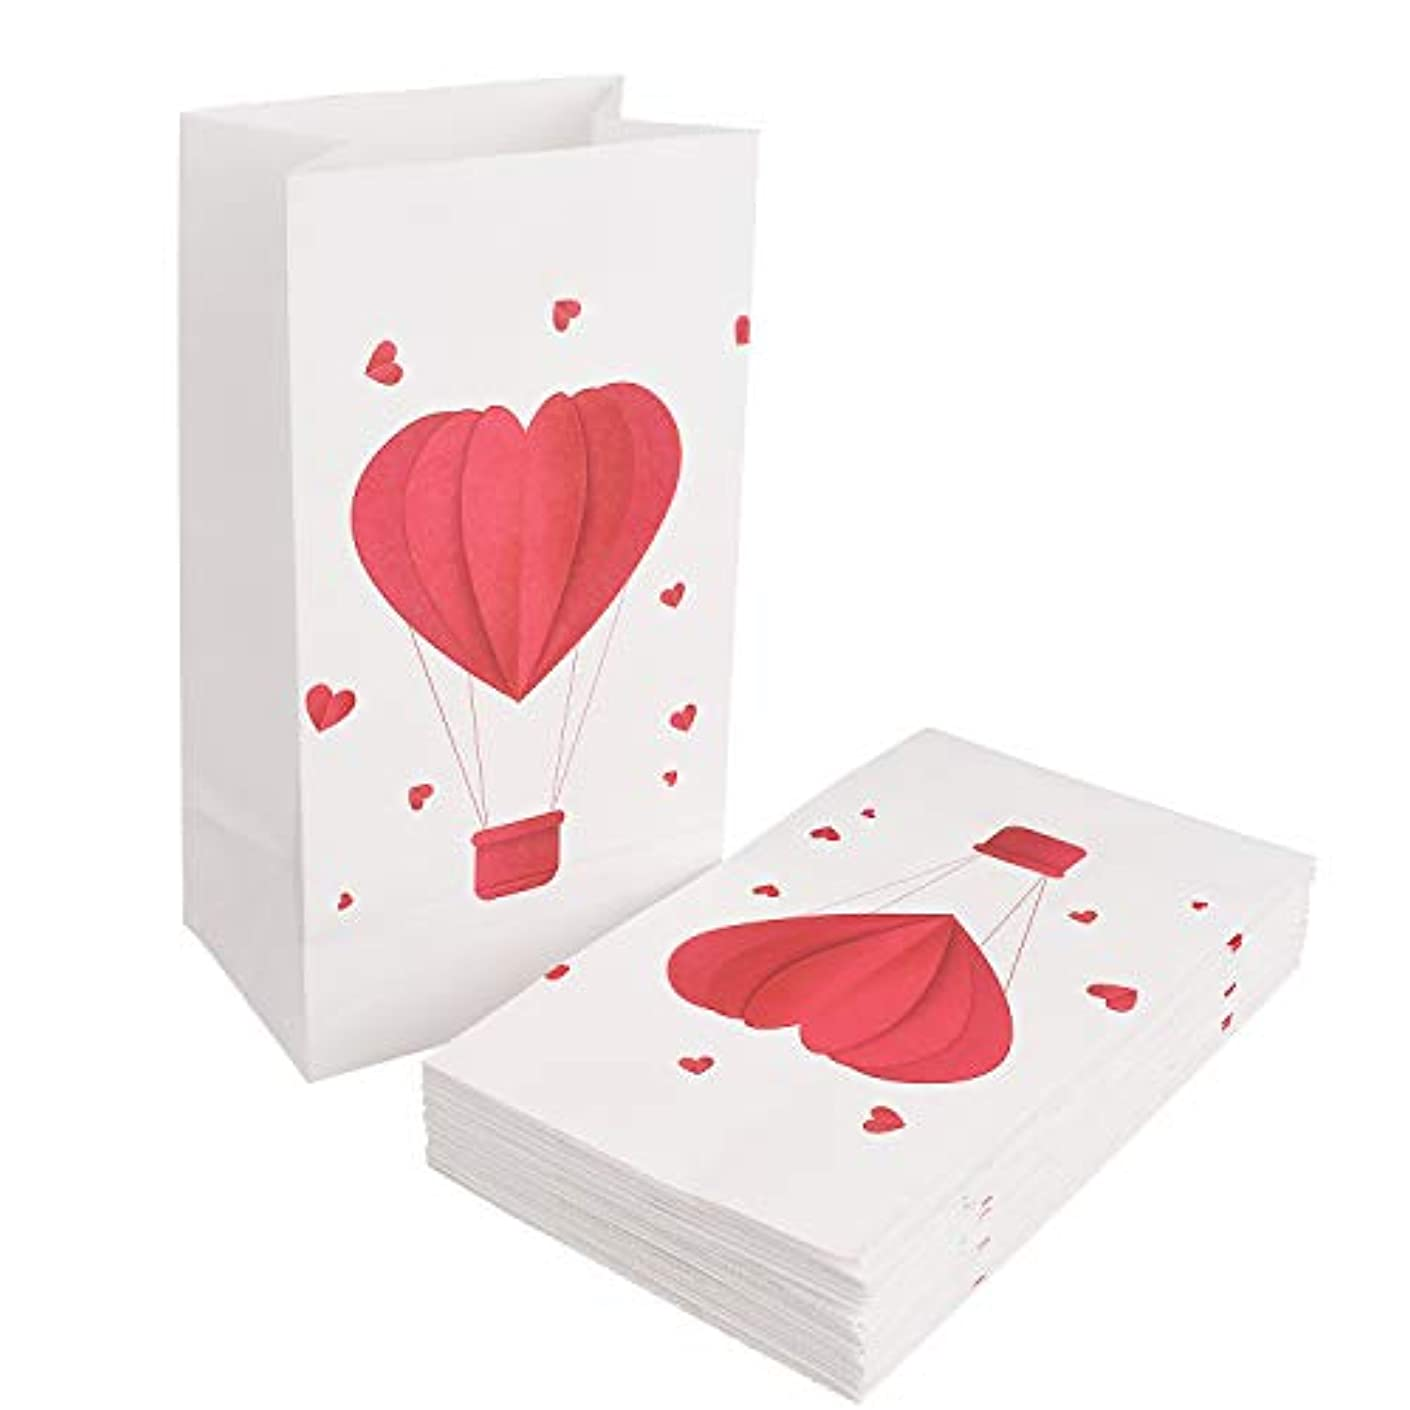 Valentine's Day Party Favor Bags 24 Pack Paper Hearts Goody Bags Small Candy Gift Toy Treat Bags by Topoox, 8.7 x 4.7 x 3.1 Inches